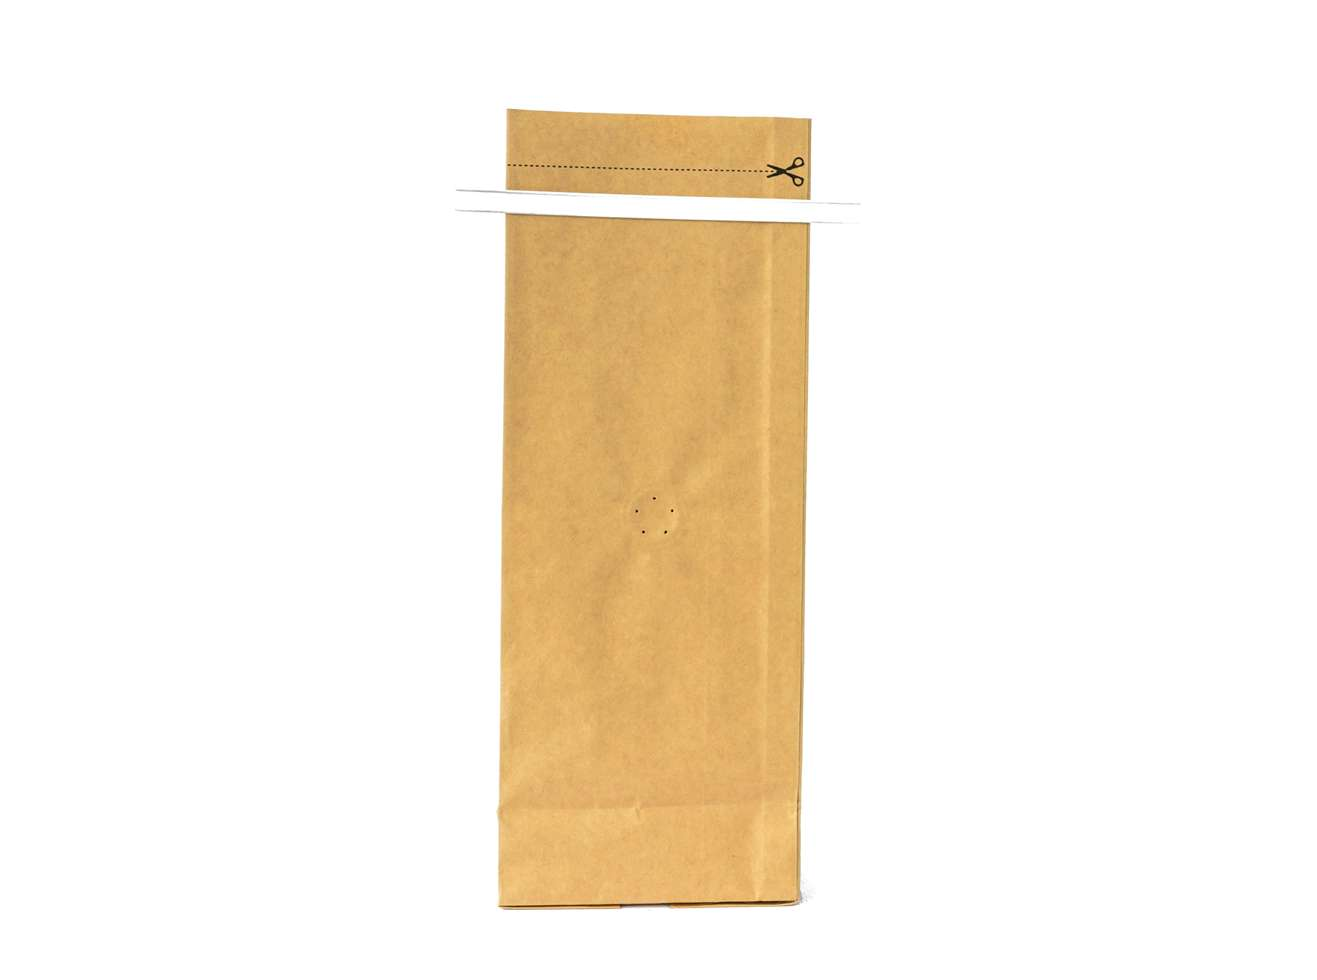 Kraft paper bag for roasted coffee beans